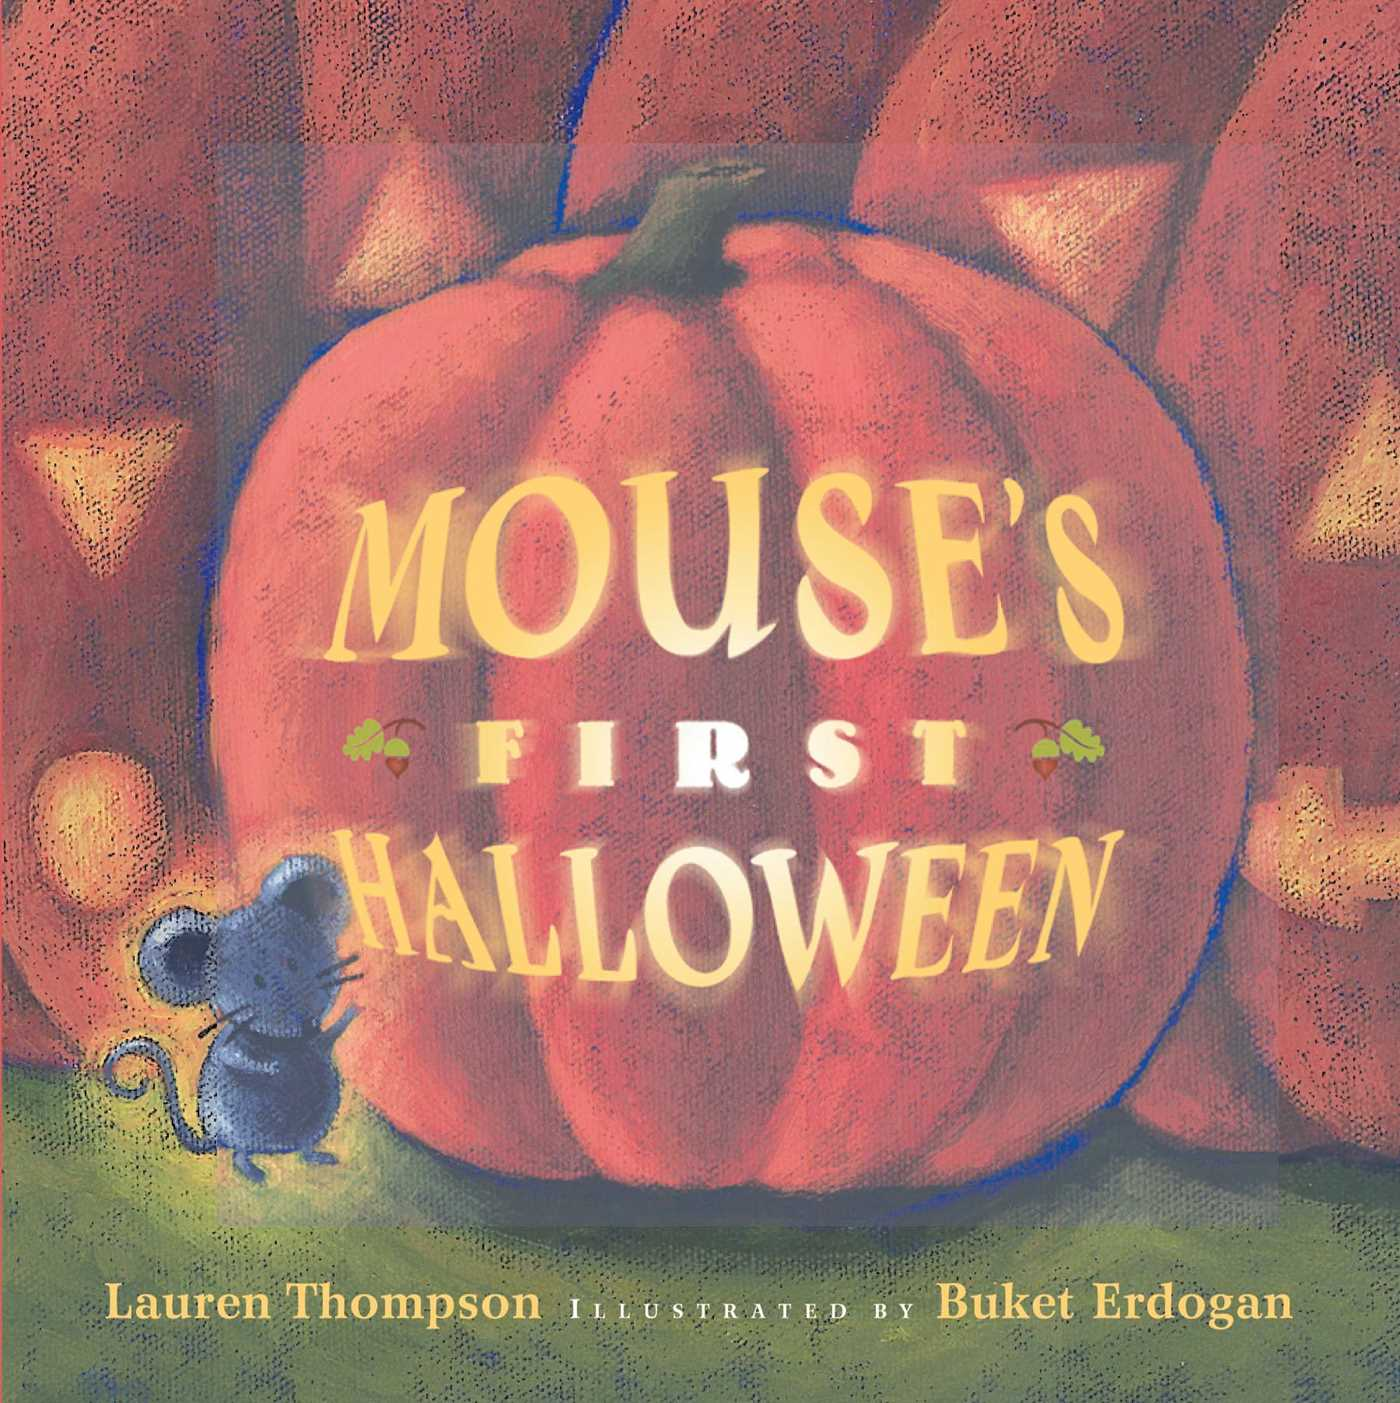 Mouses first halloween 9781442457676 hr